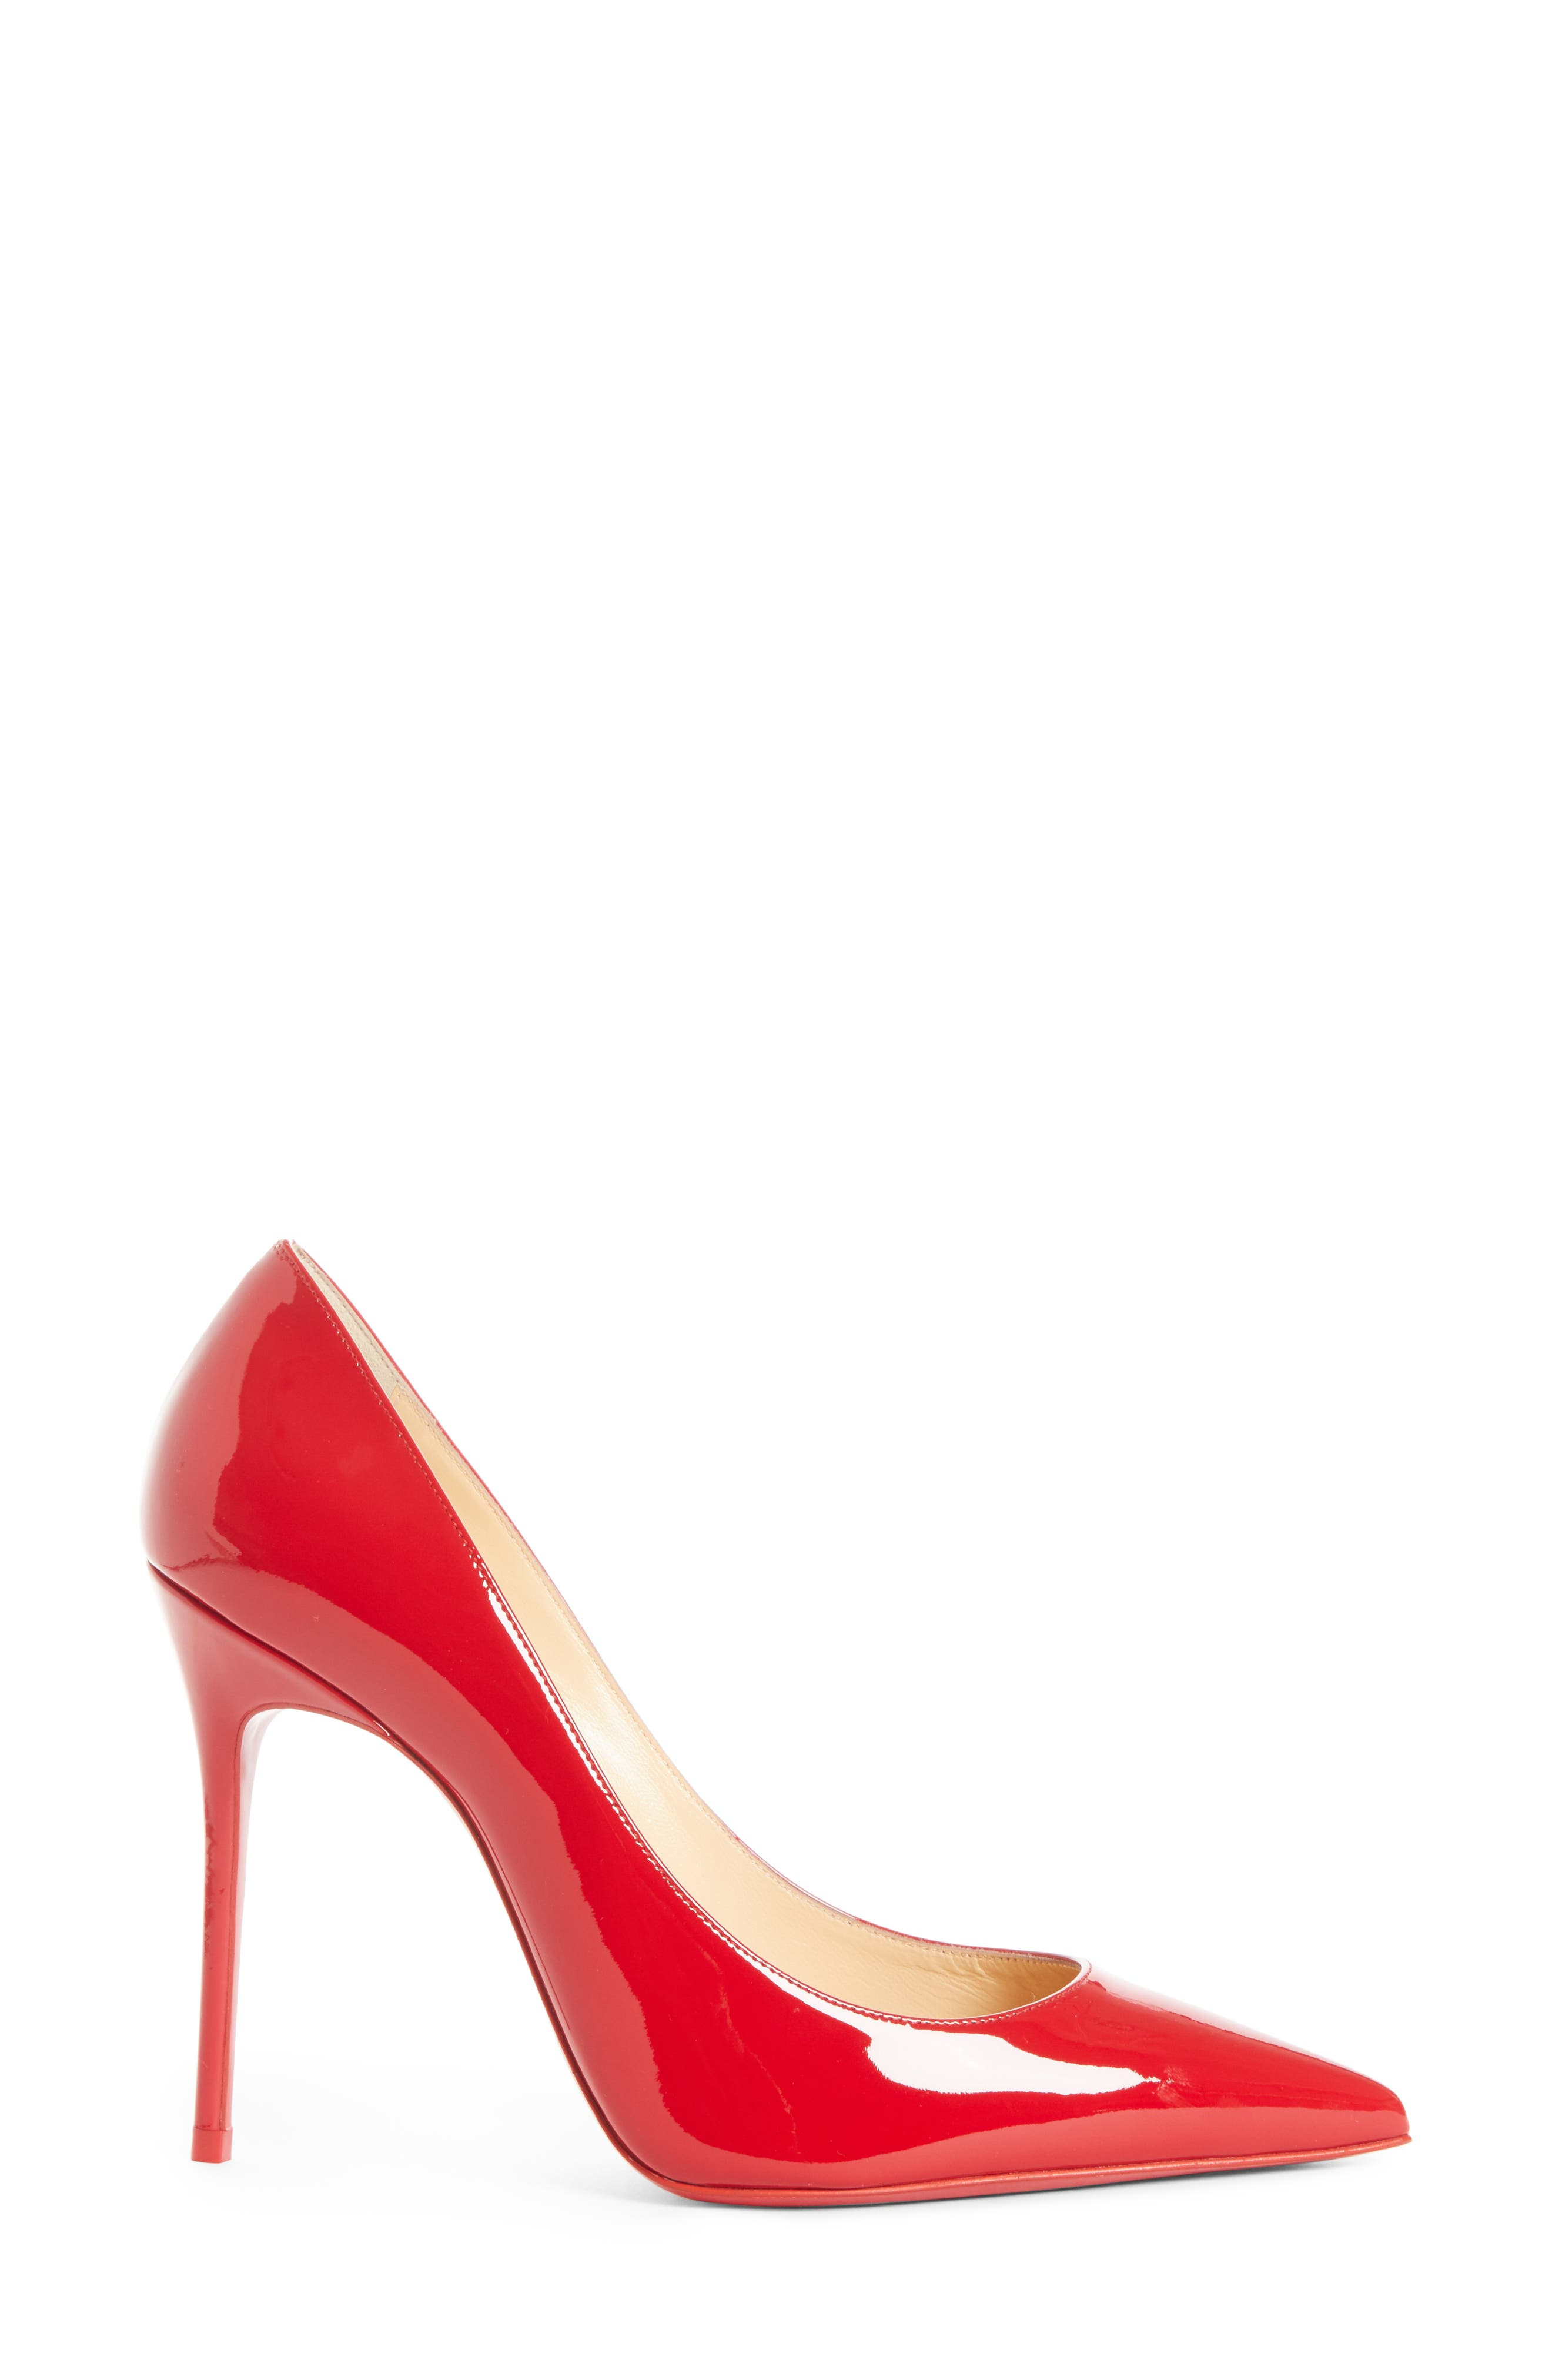 'Decollete' Pointy Toe Pump,                             Alternate thumbnail 3, color,                             623